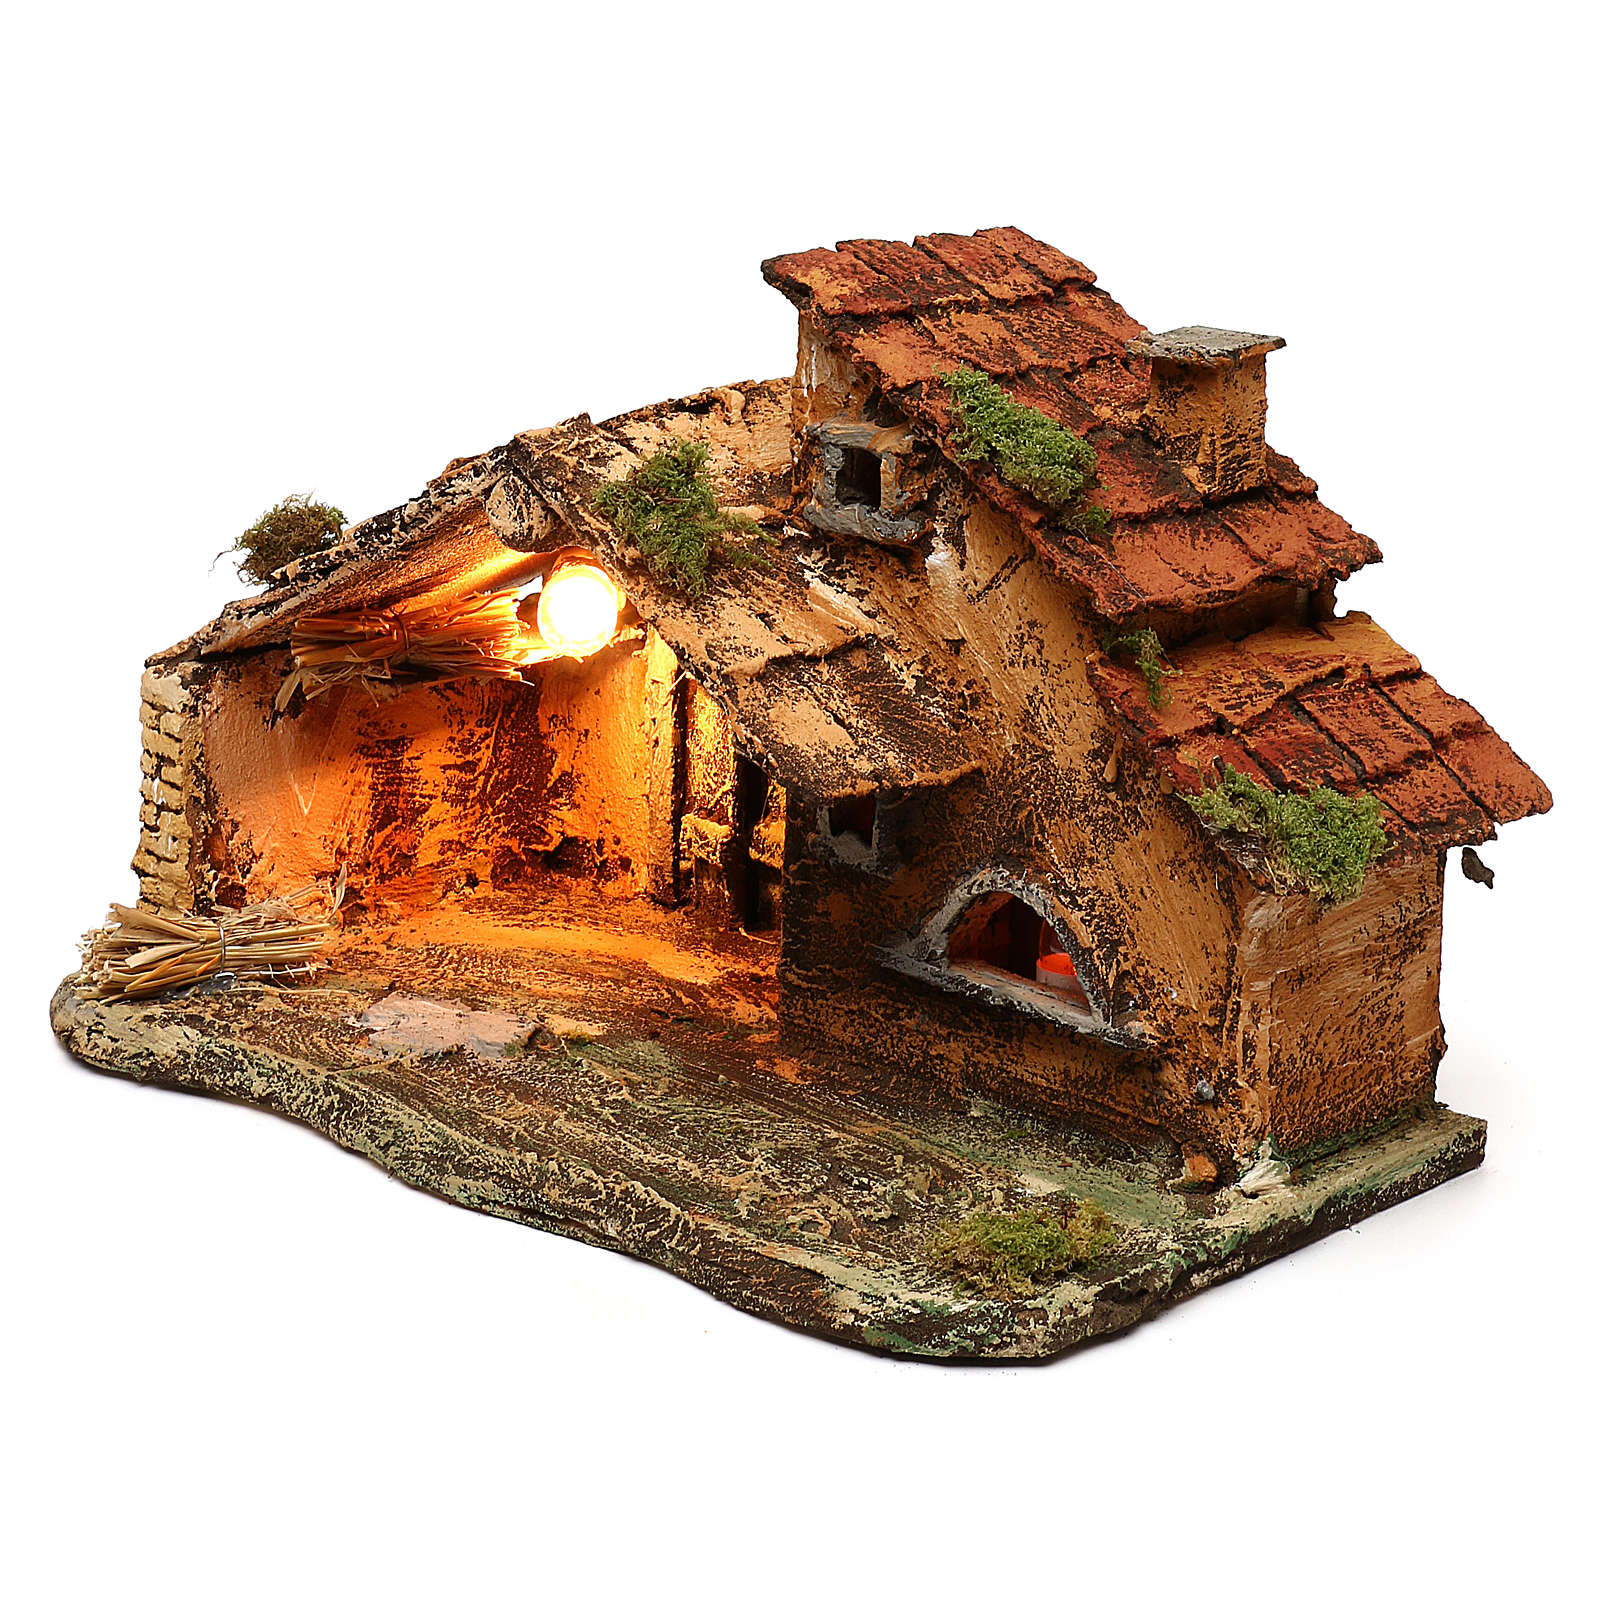 Hut with light and flame effect lamp for Nativity scene 40x25x25 cm 4